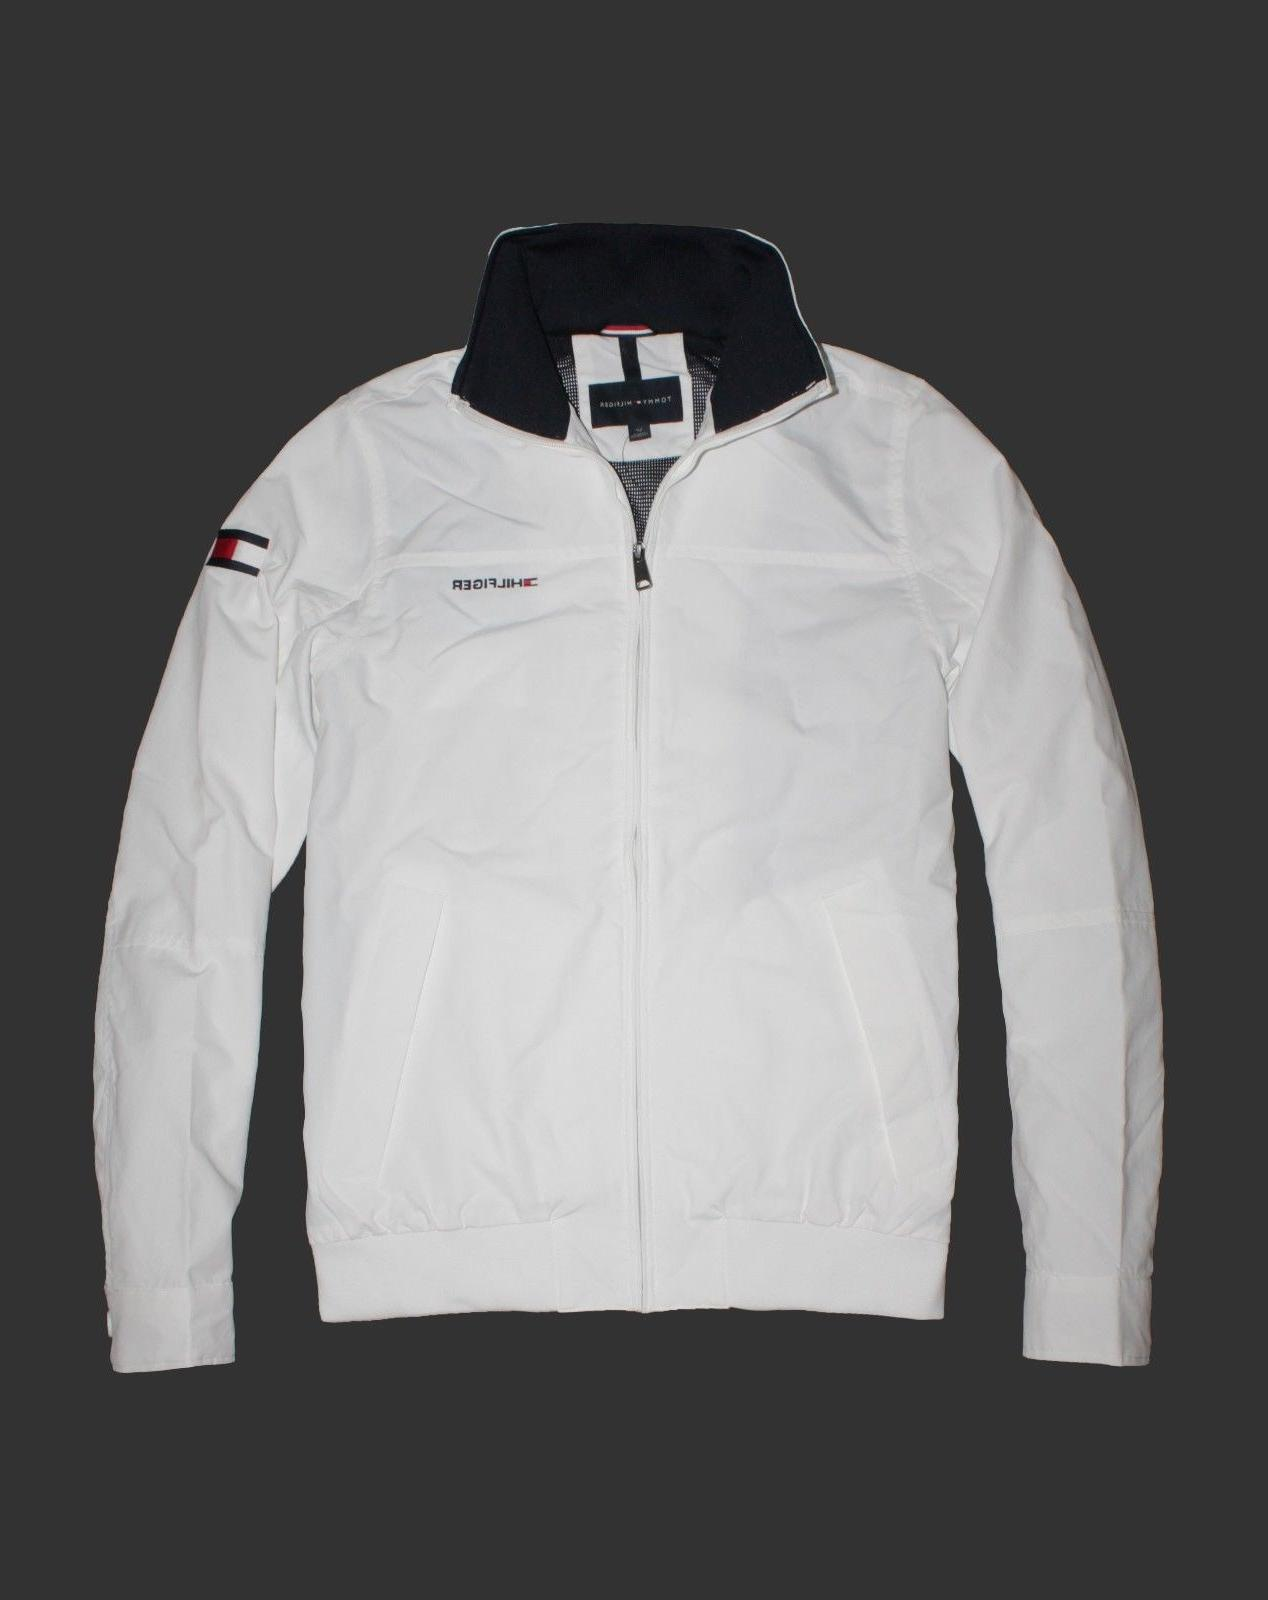 men yachting outerwear jacket all size new